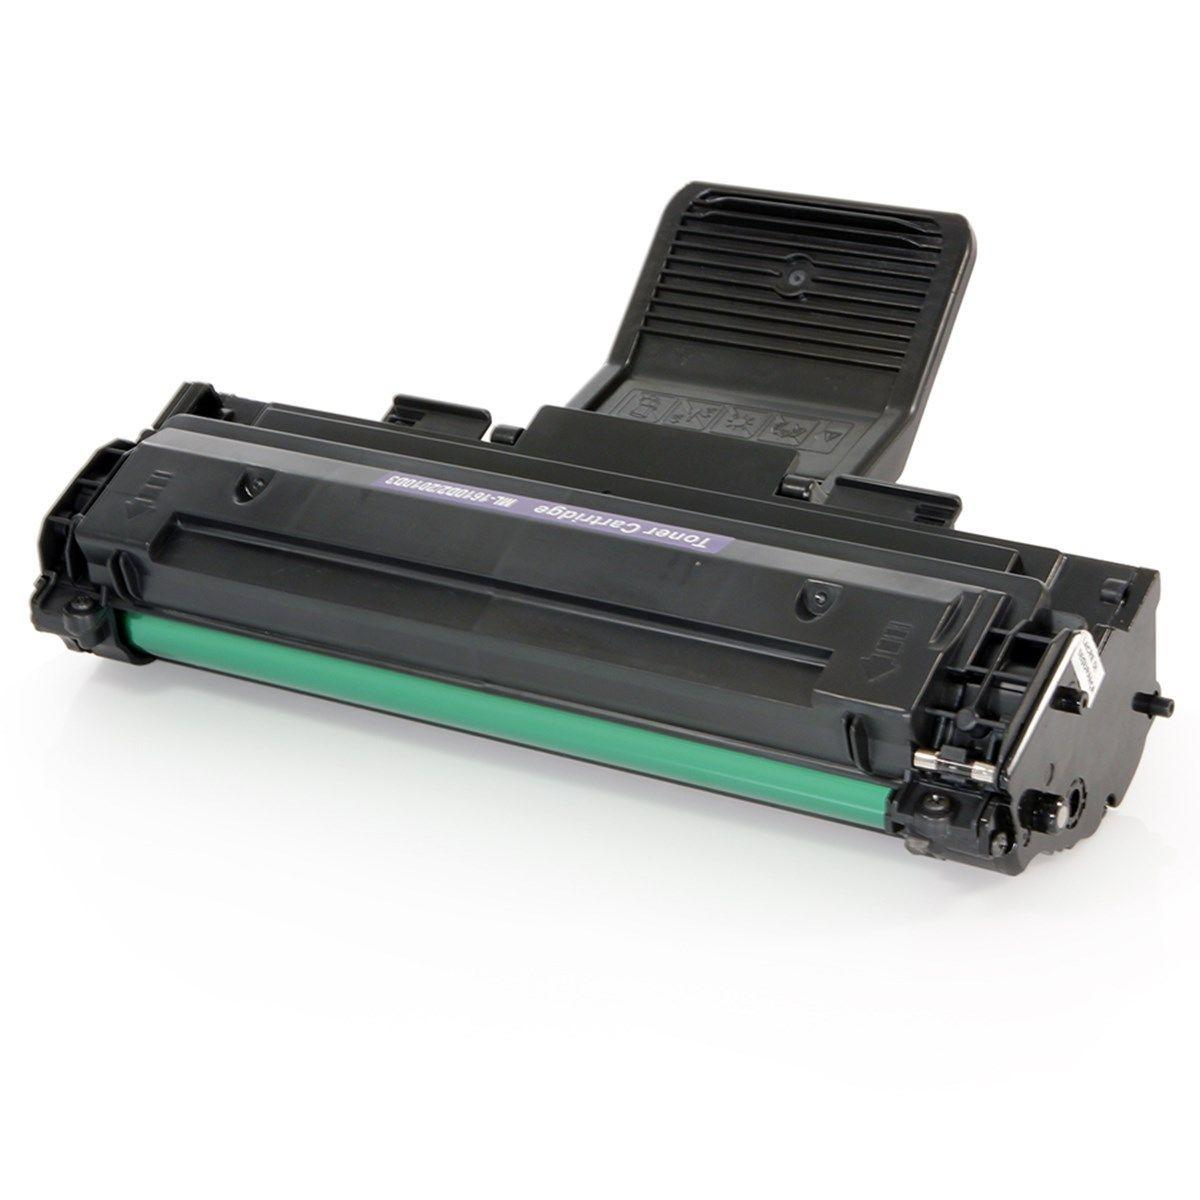 Compatible toner cartridges for Dell printers